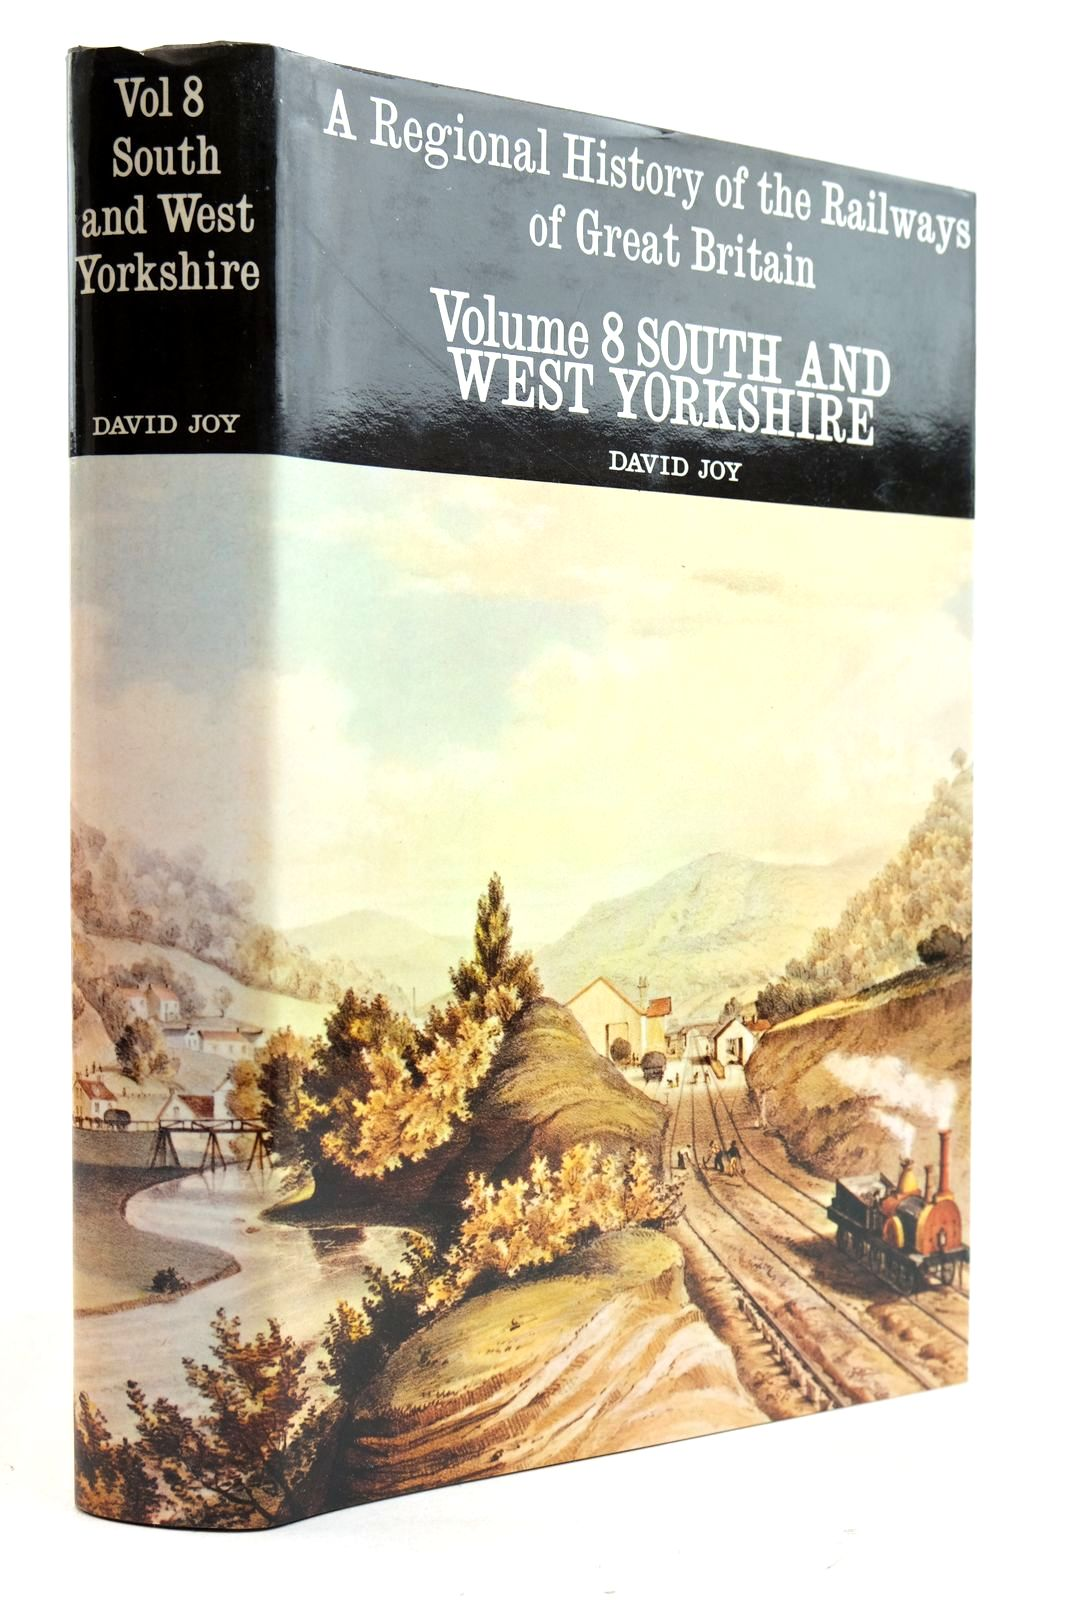 Photo of A REGIONAL HISTORY OF THE RAILWAYS OF GREAT BRITAIN VOLUME VIII SOUTH AND WEST YORKSHIRE- Stock Number: 2133050